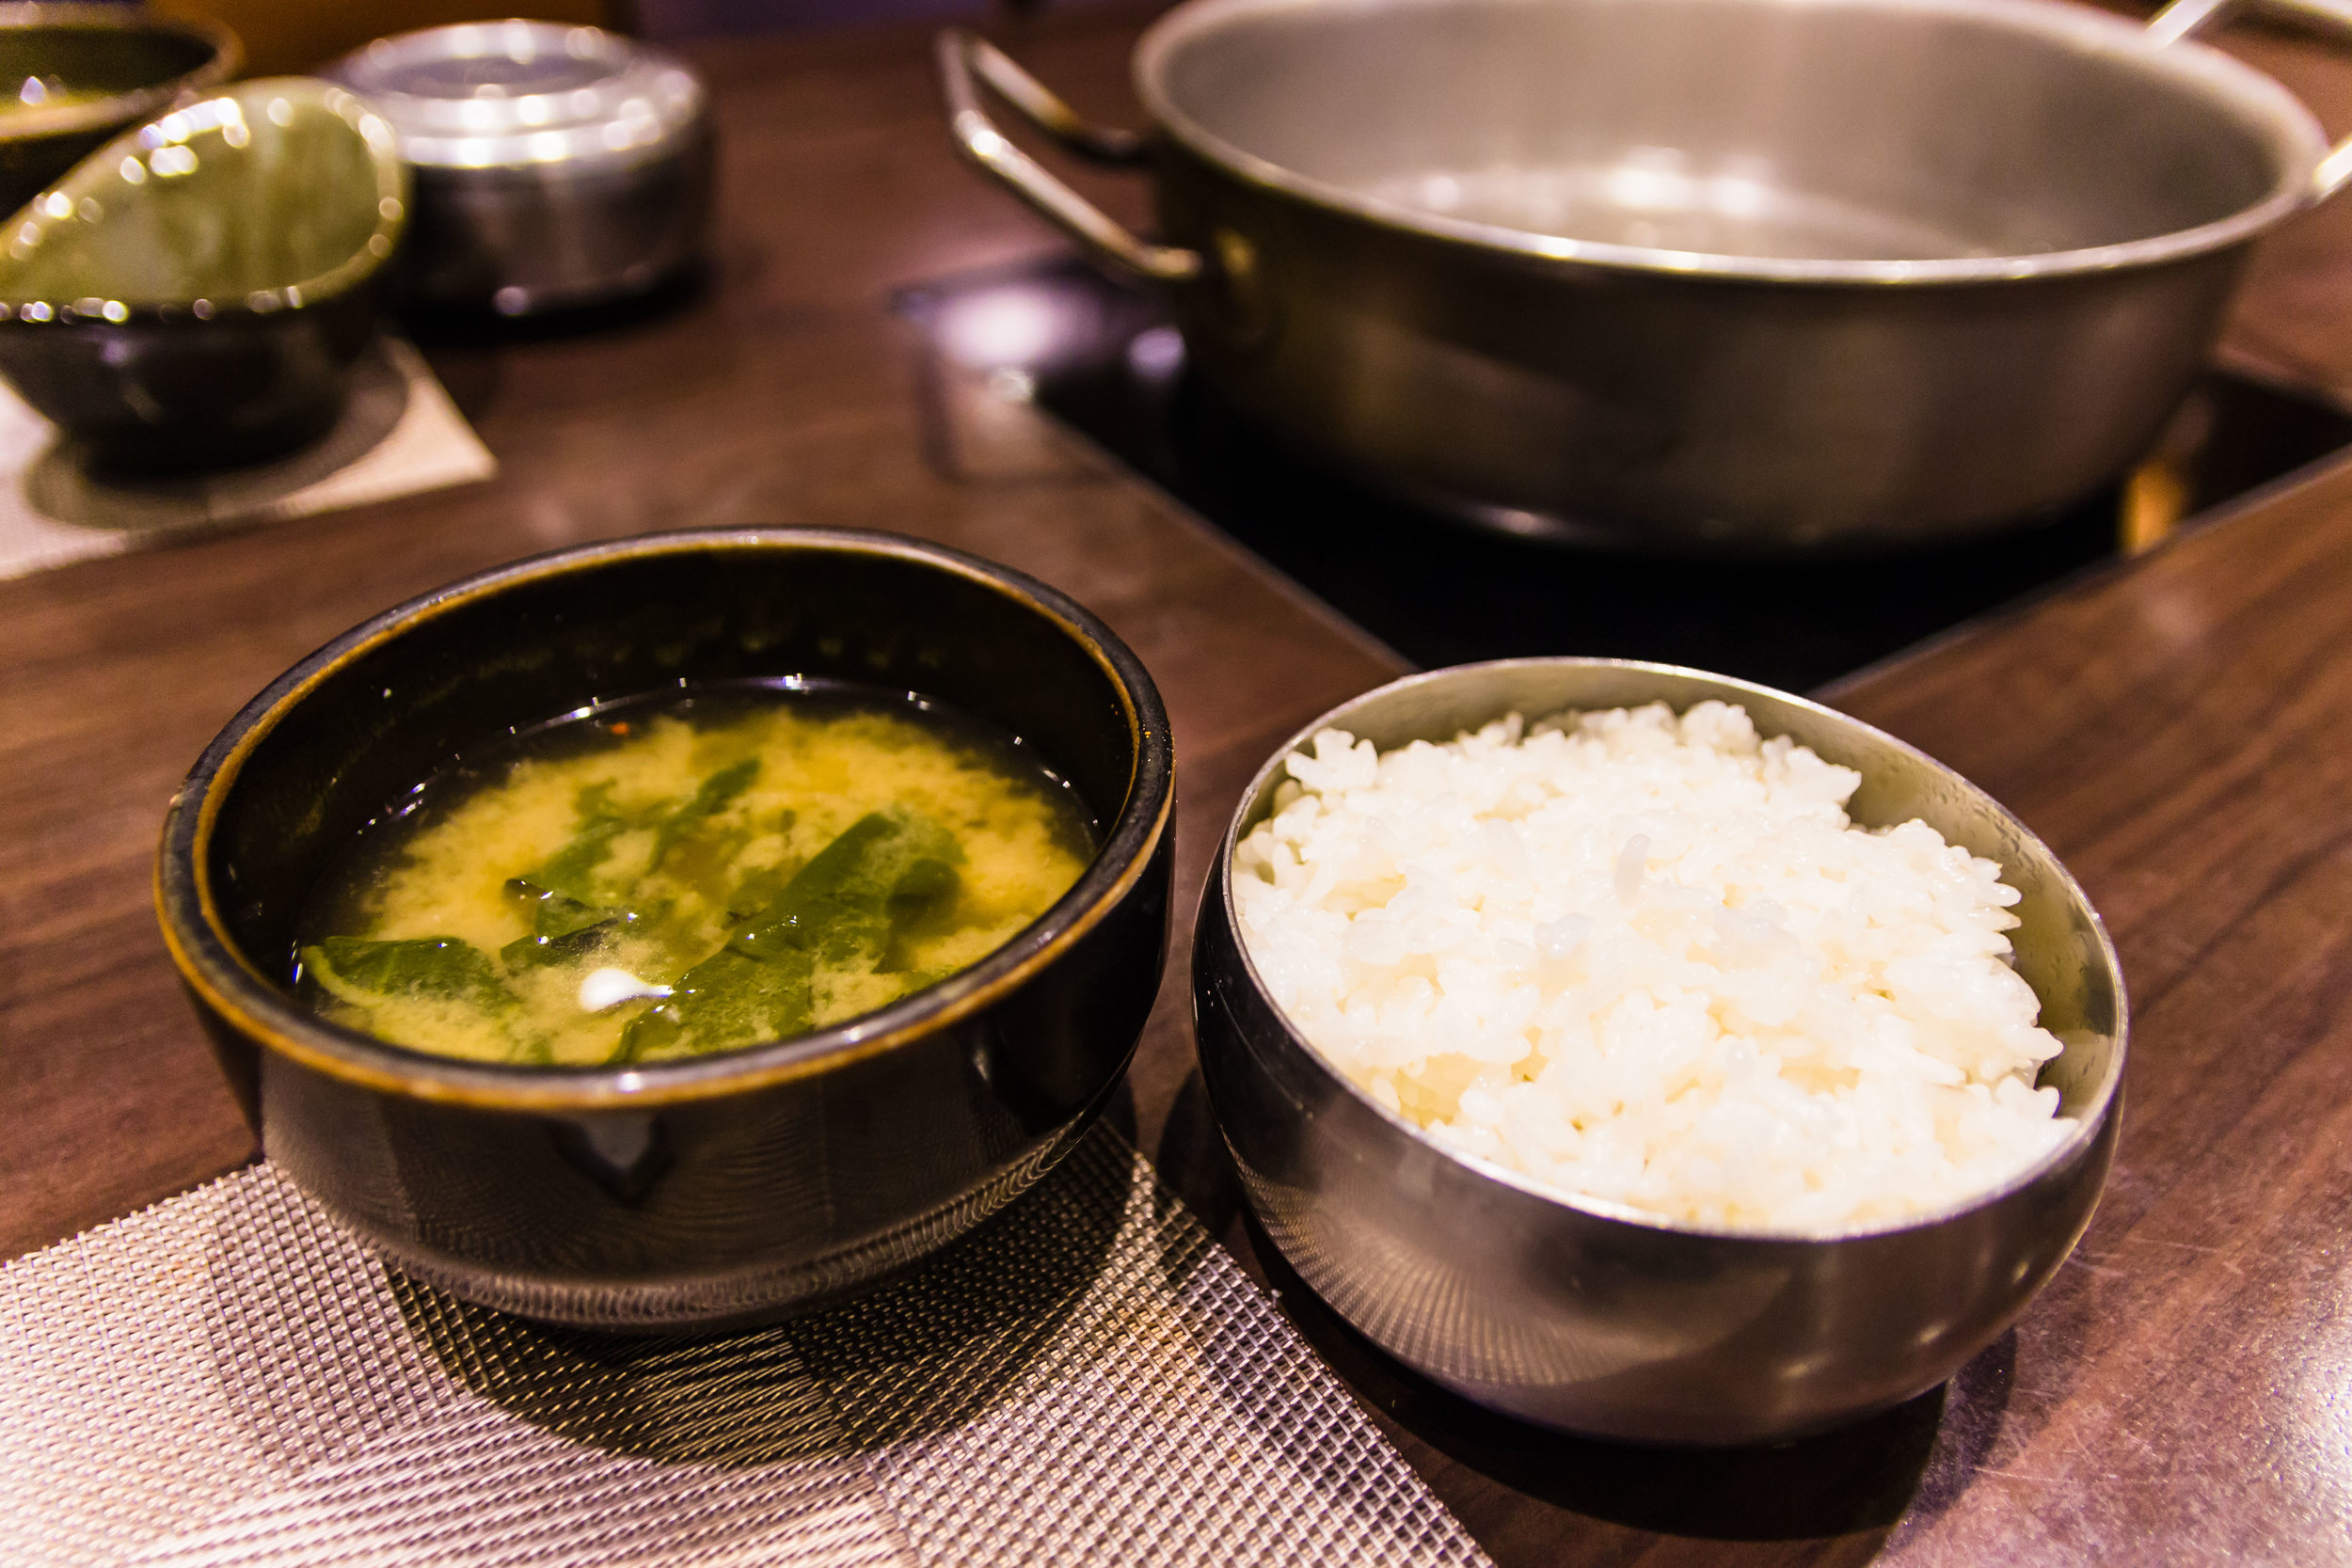 Rice and seaweed soup